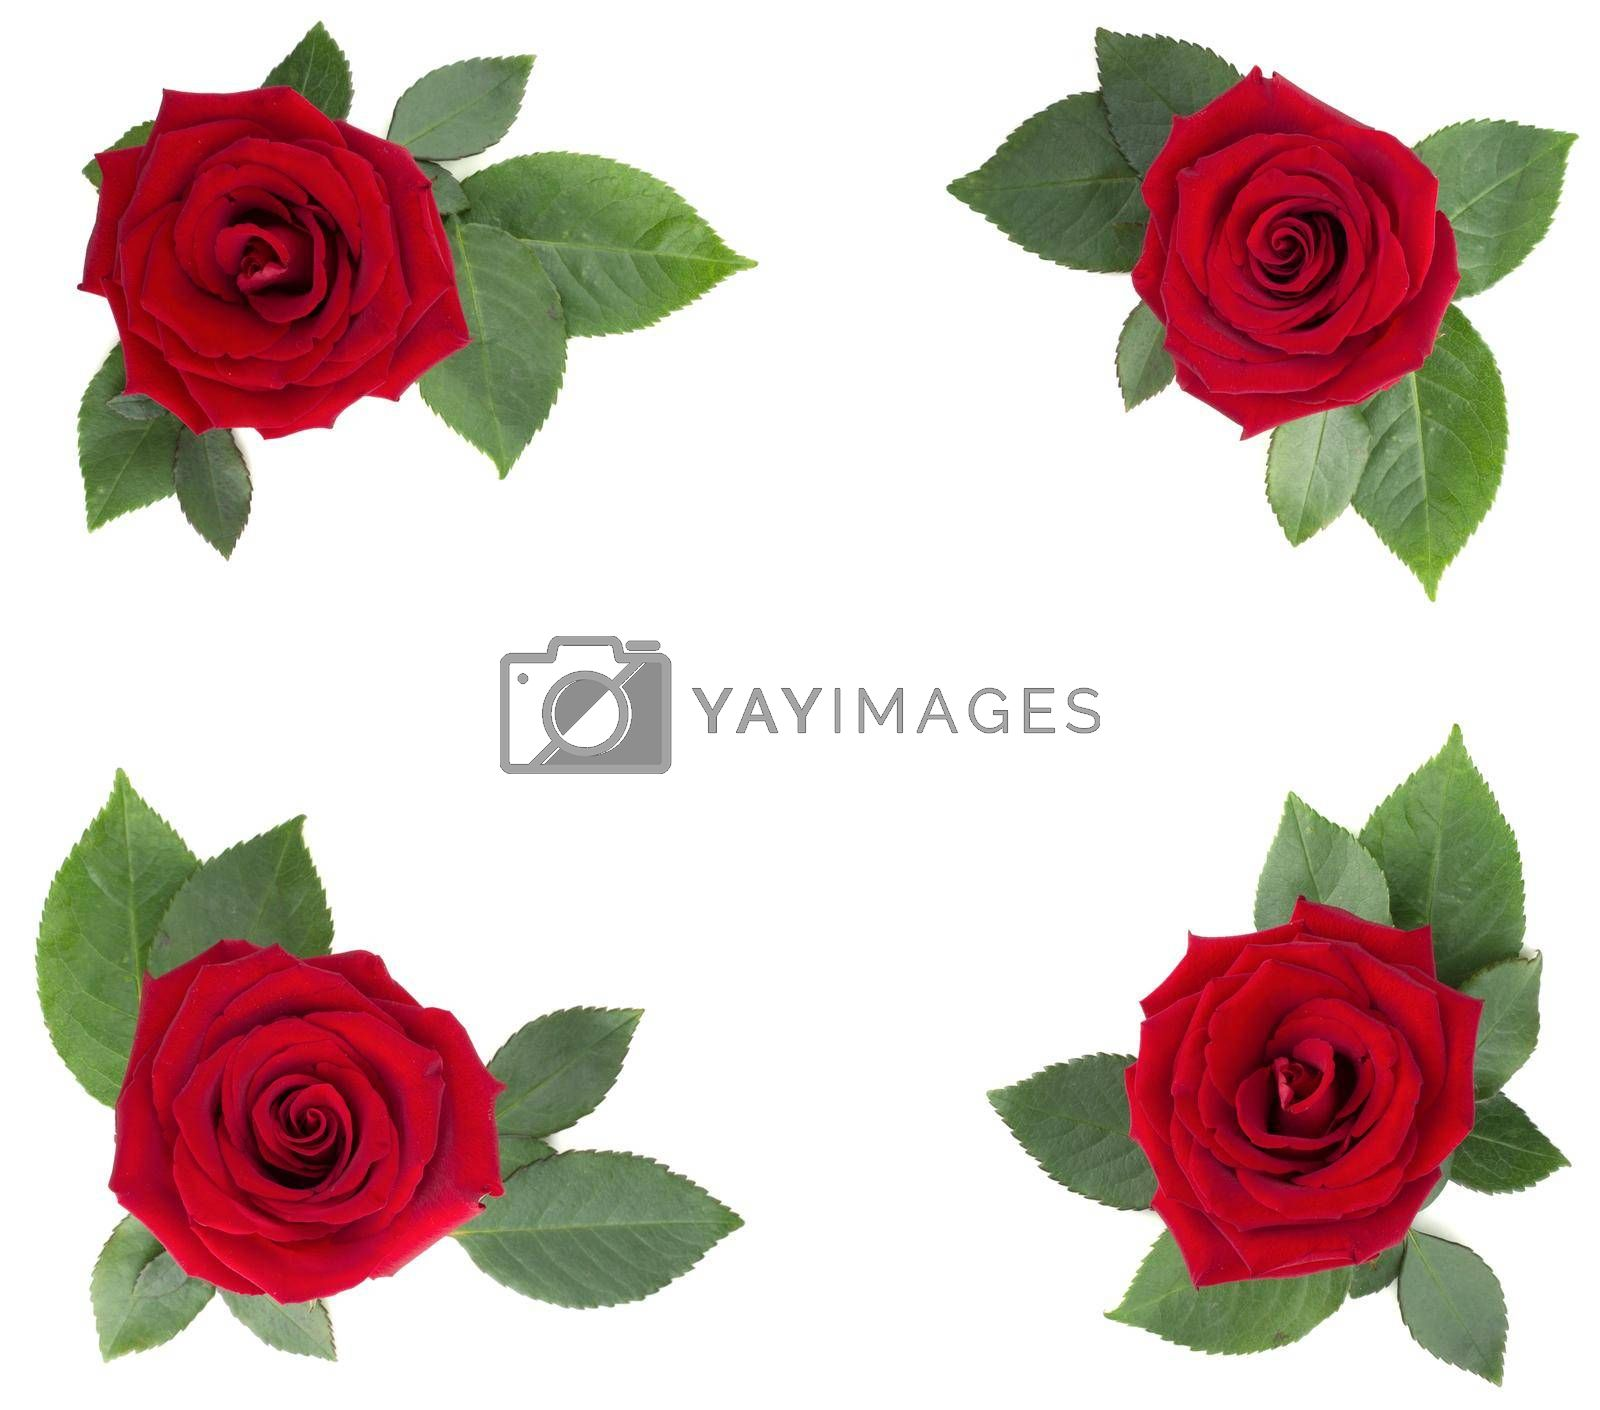 Red rose flowers and leaves arrangement corner border frame design element isolated on white background, top view, Valentines day